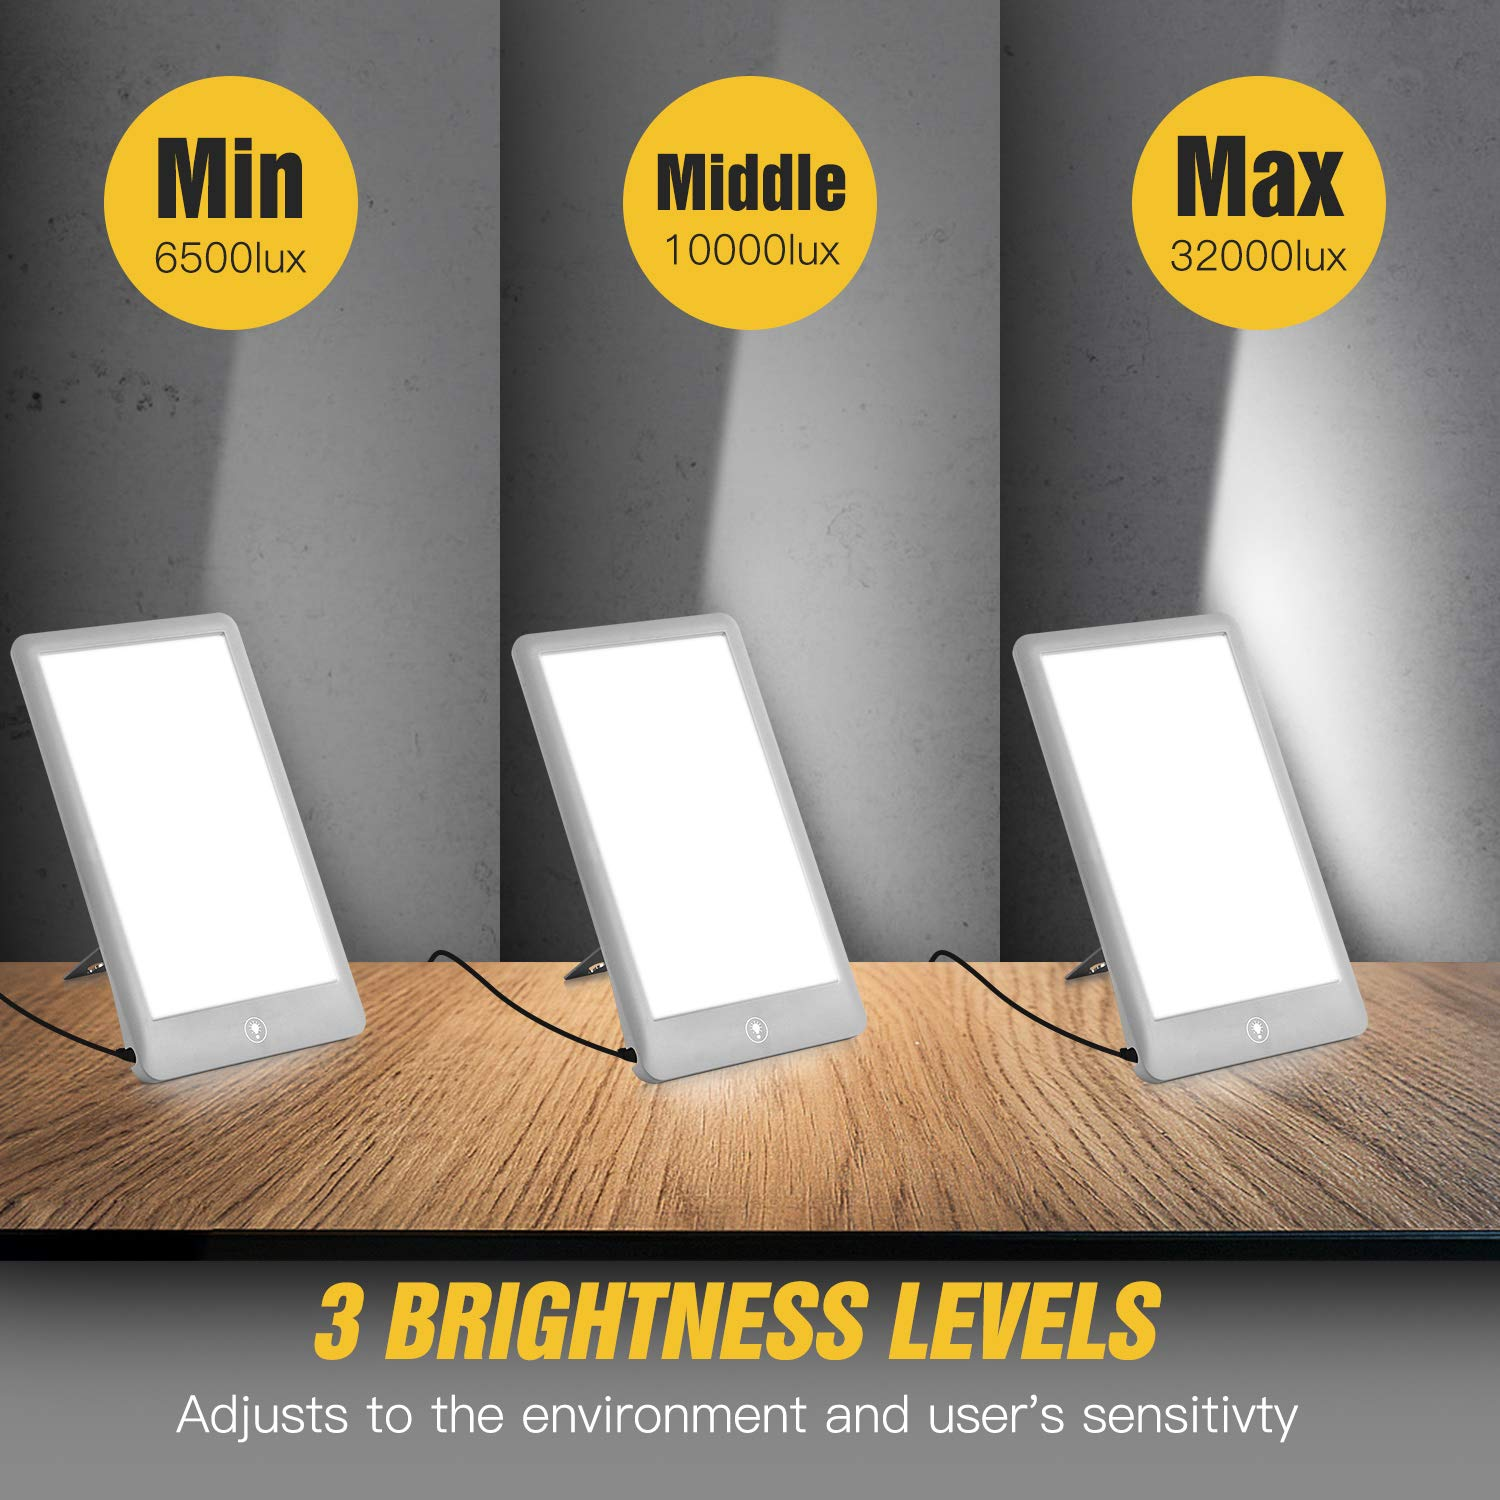 Light Therapy Lamp, 3 Brightness Levels Light Therapy Energy Box, Full Spectrum UV Free & Touch Control, Portable Sun Lamps for Happy Life, Max 32,000 LUX, White by sakobs (Image #4)